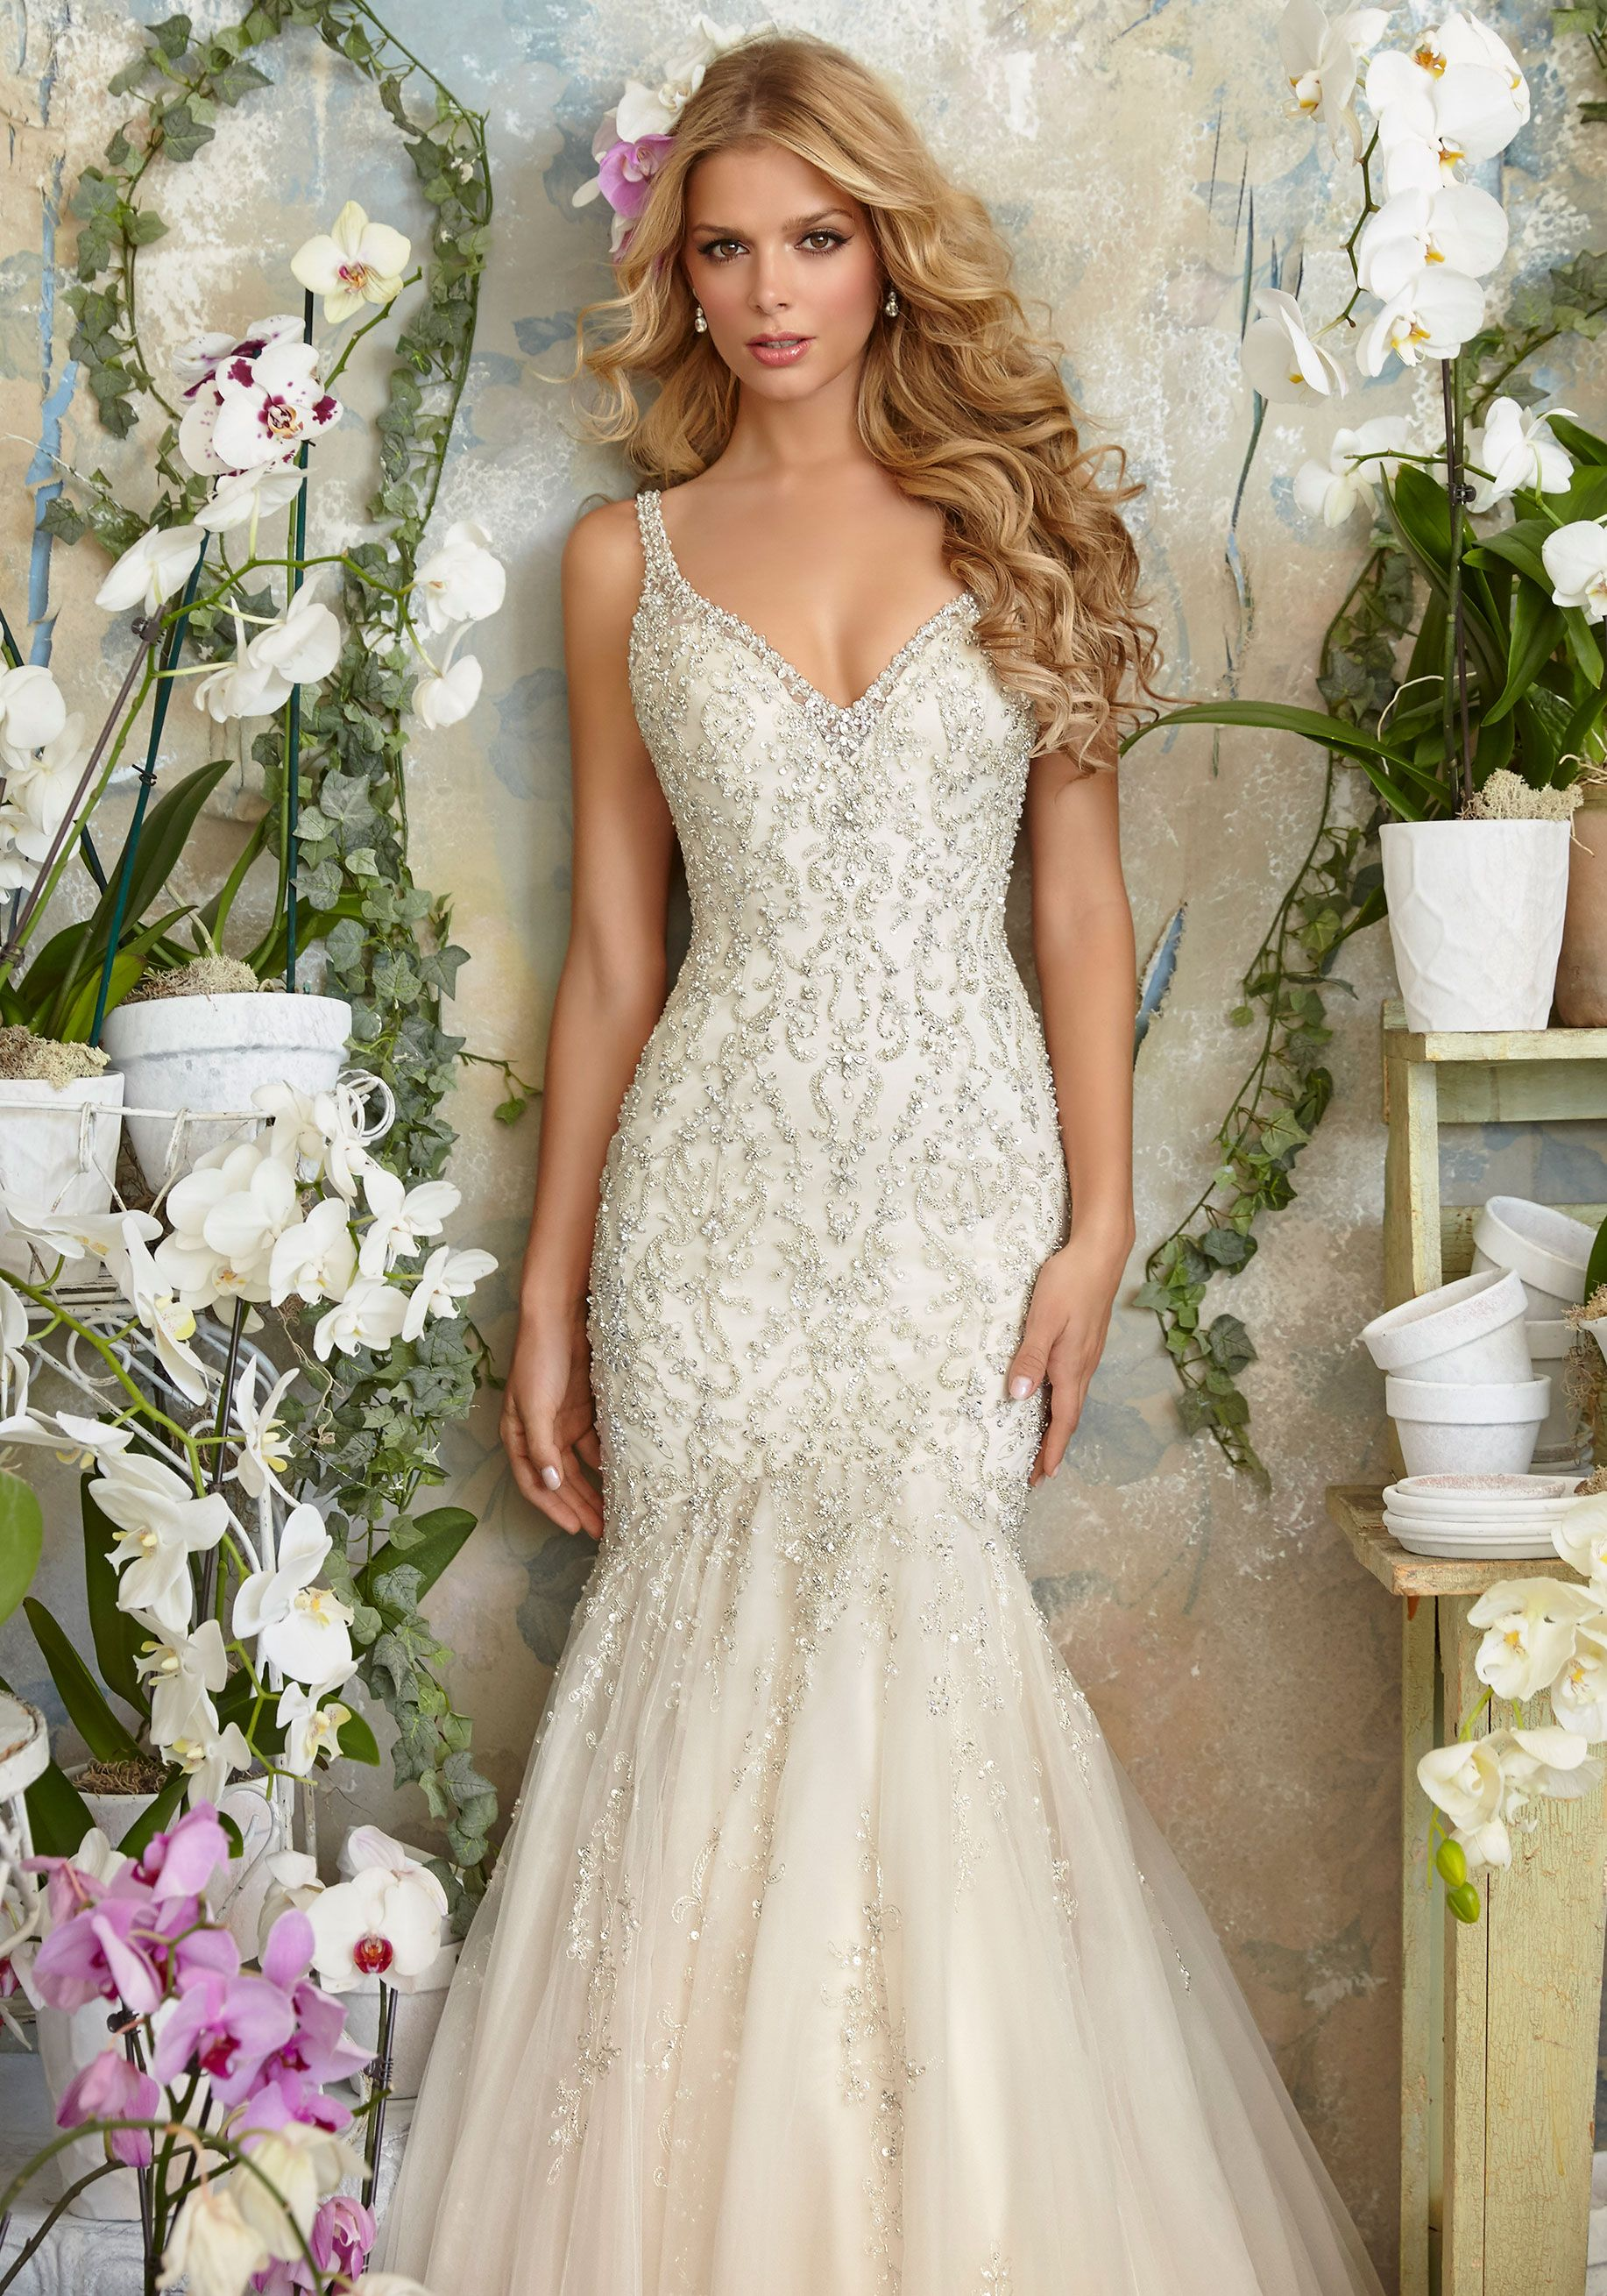 2823 Intricate Crystal Beaded Embroidery On The Tulle